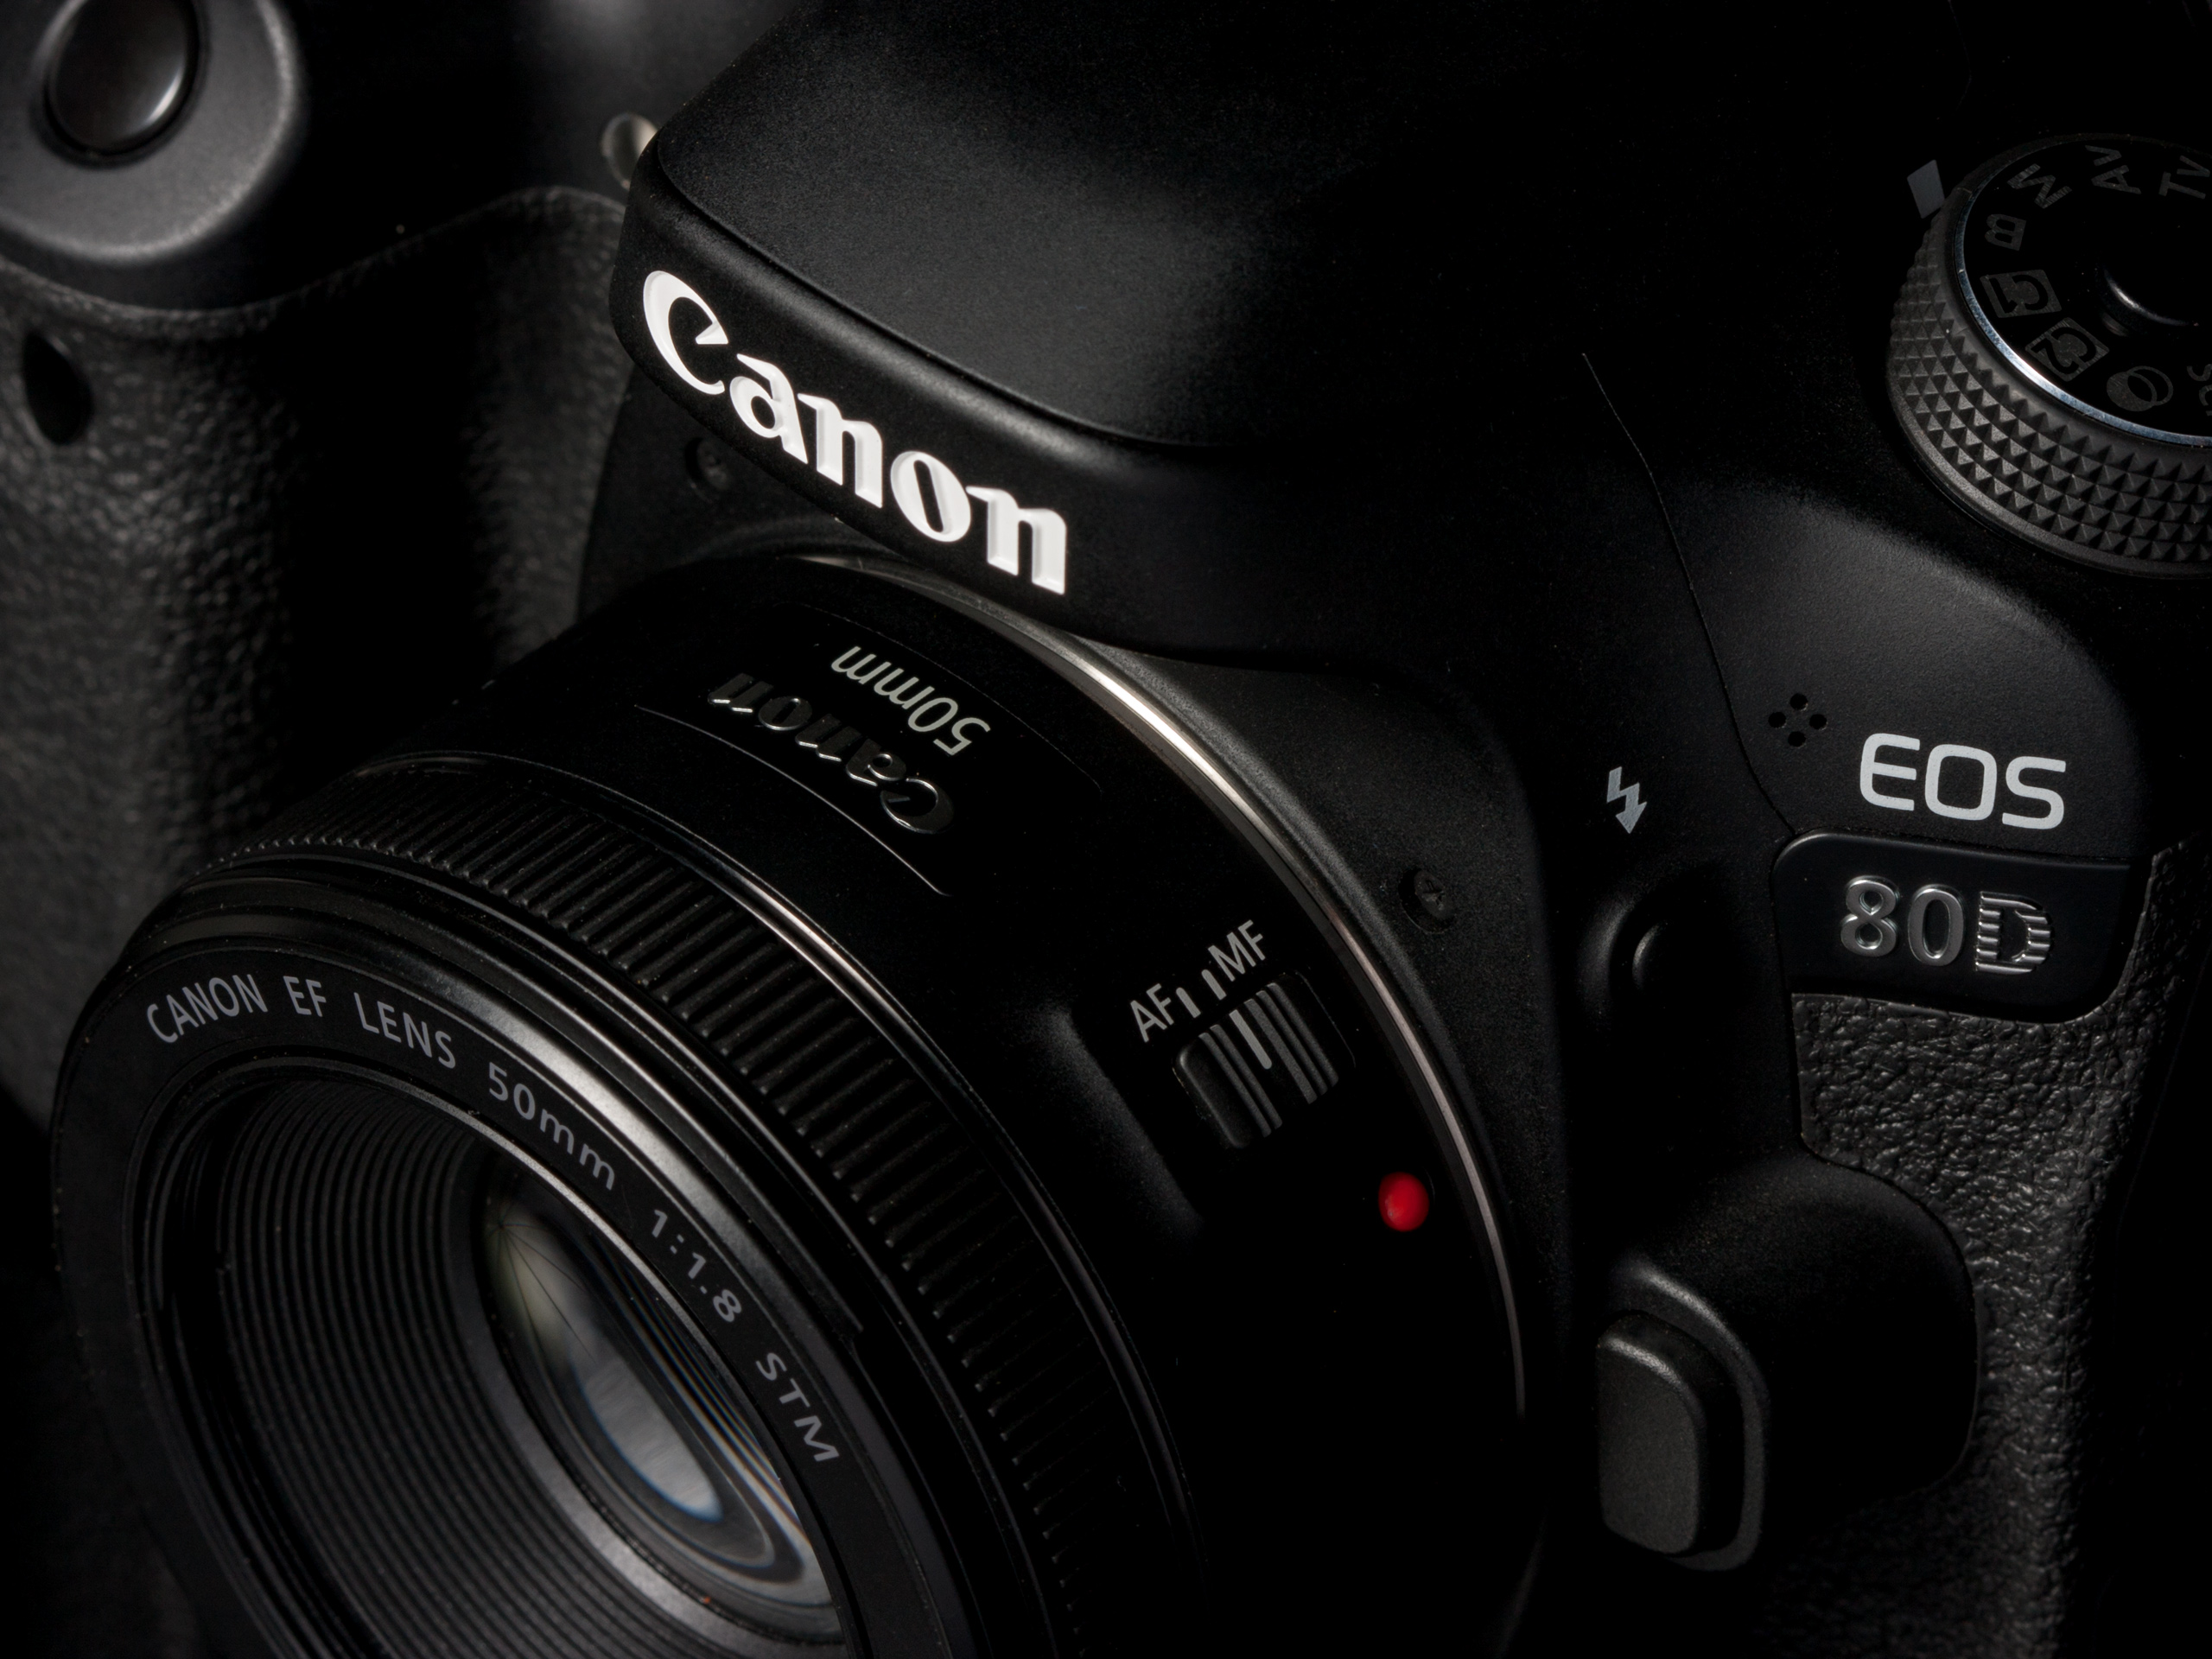 The Canon that can: Canon EOS 80D Review: Digital Photography Review